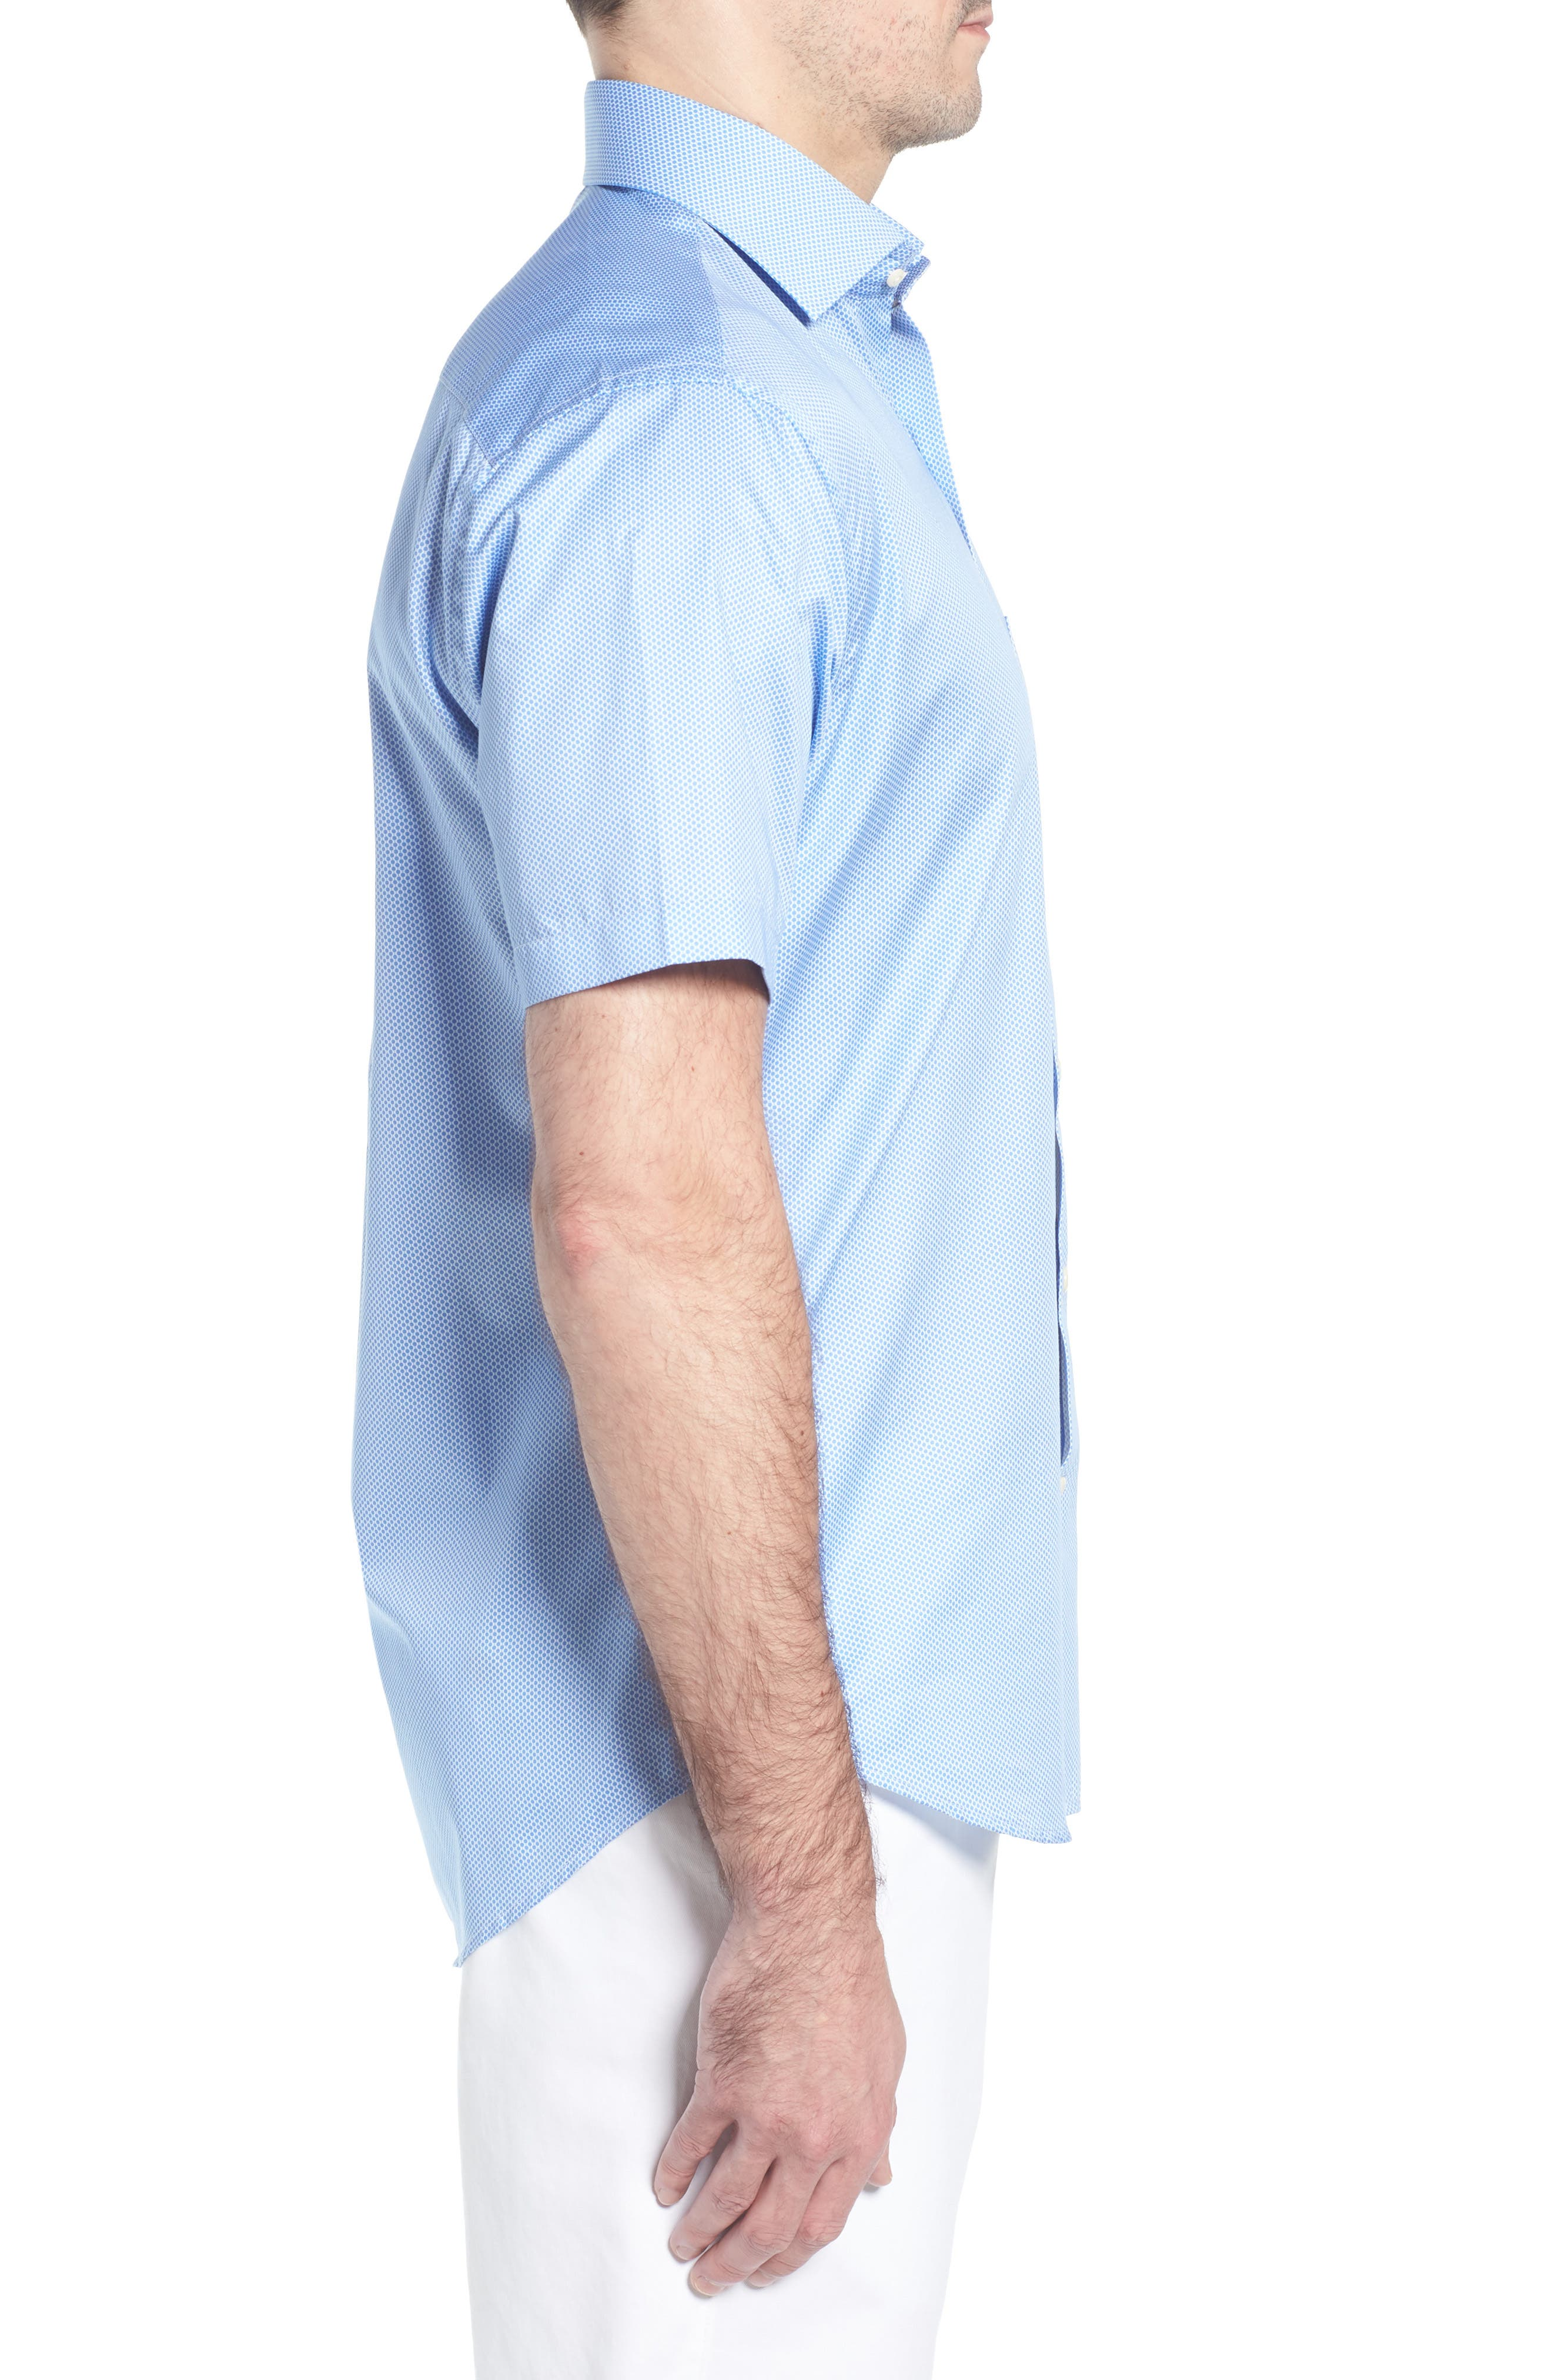 Crown Ease Connecting the Dots Sport Shirt,                             Alternate thumbnail 3, color,                             ATLAS BLUE